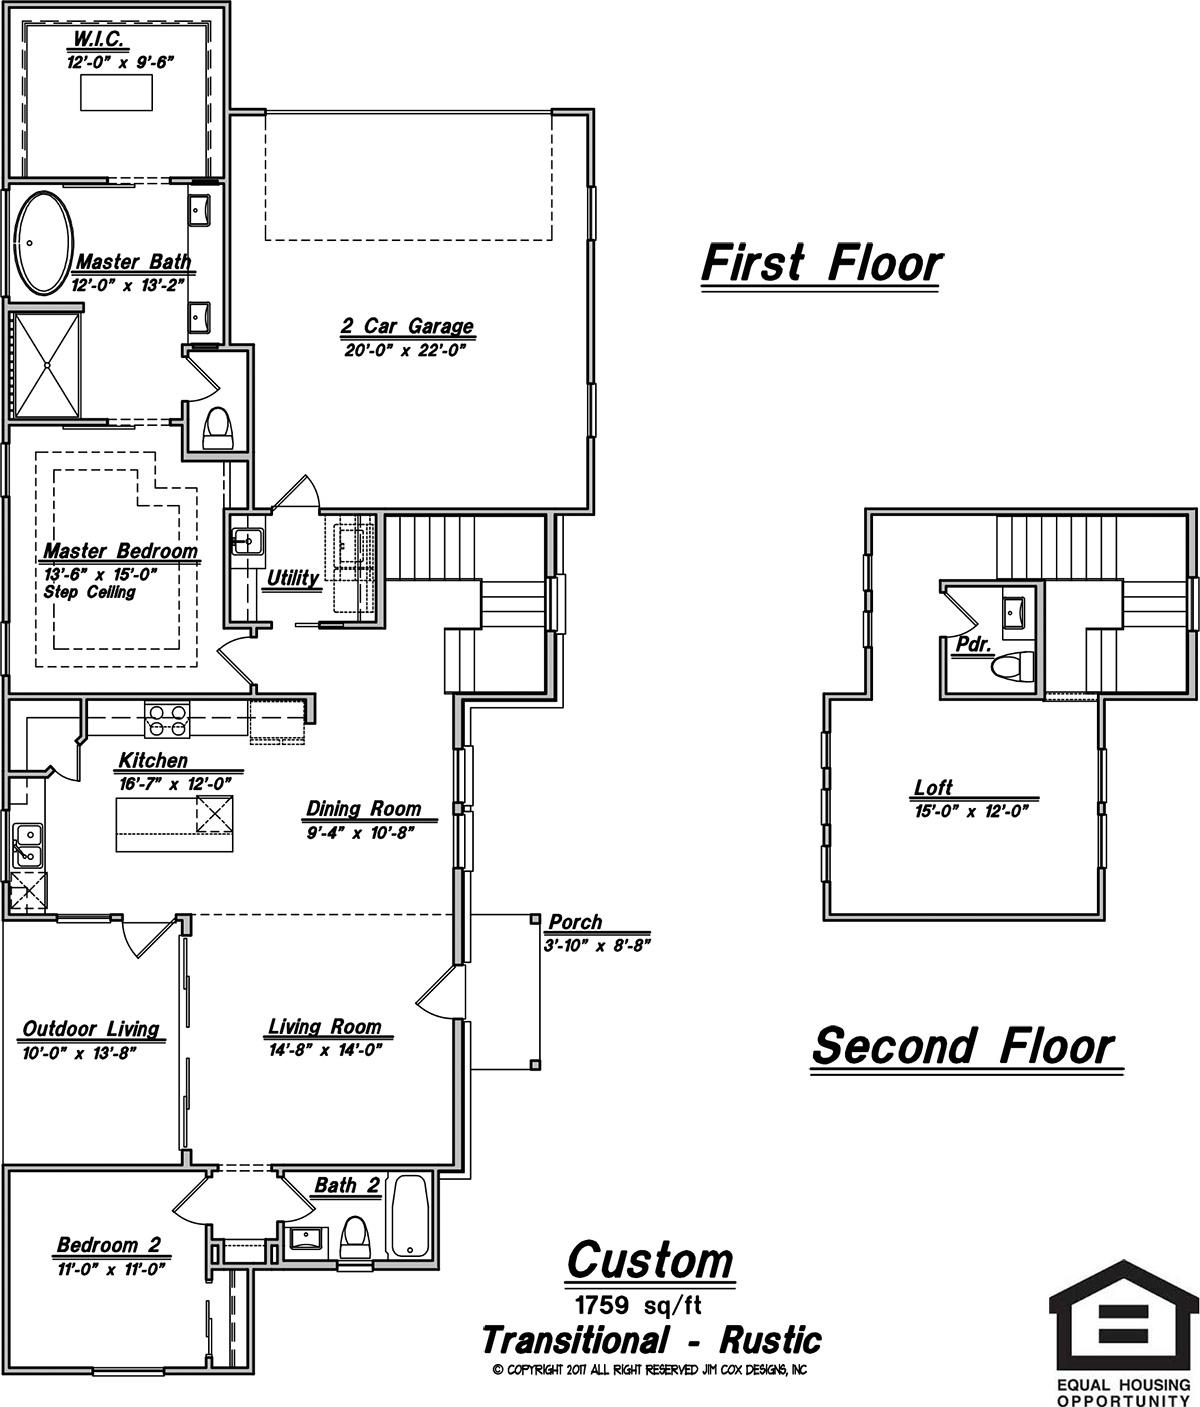 commercial plans jim cox designs comfortably compact the space in this home is utilized for maximum livability with two bedrooms and baths separated by the main living areas